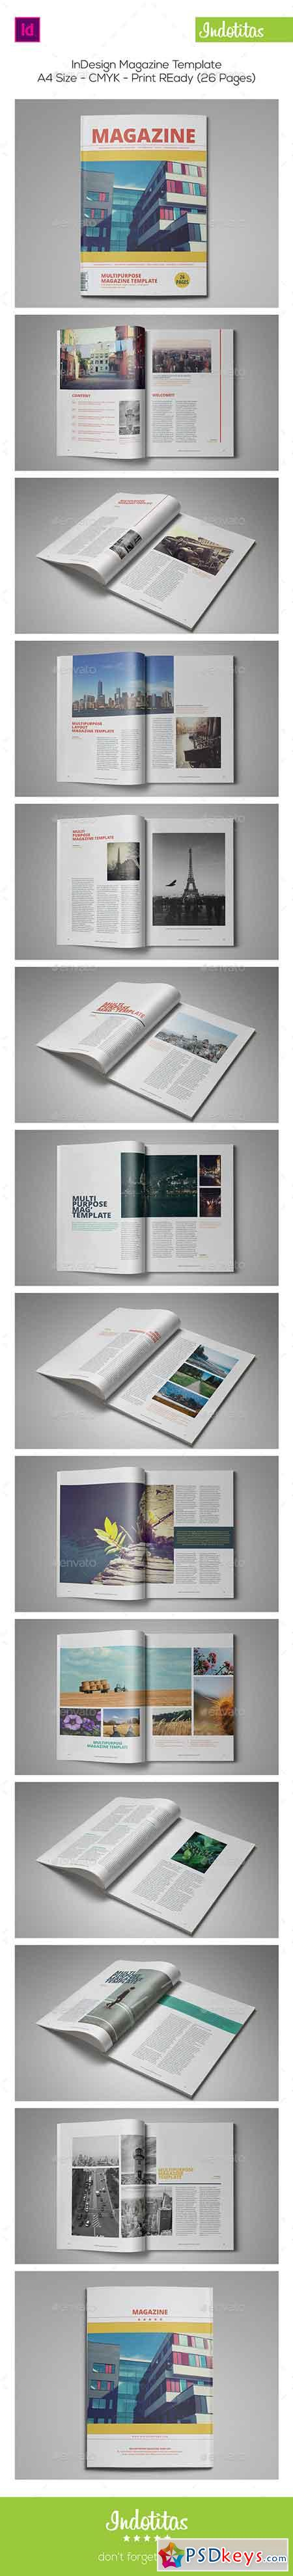 26 Pages InDesign Magazine Template 9171577